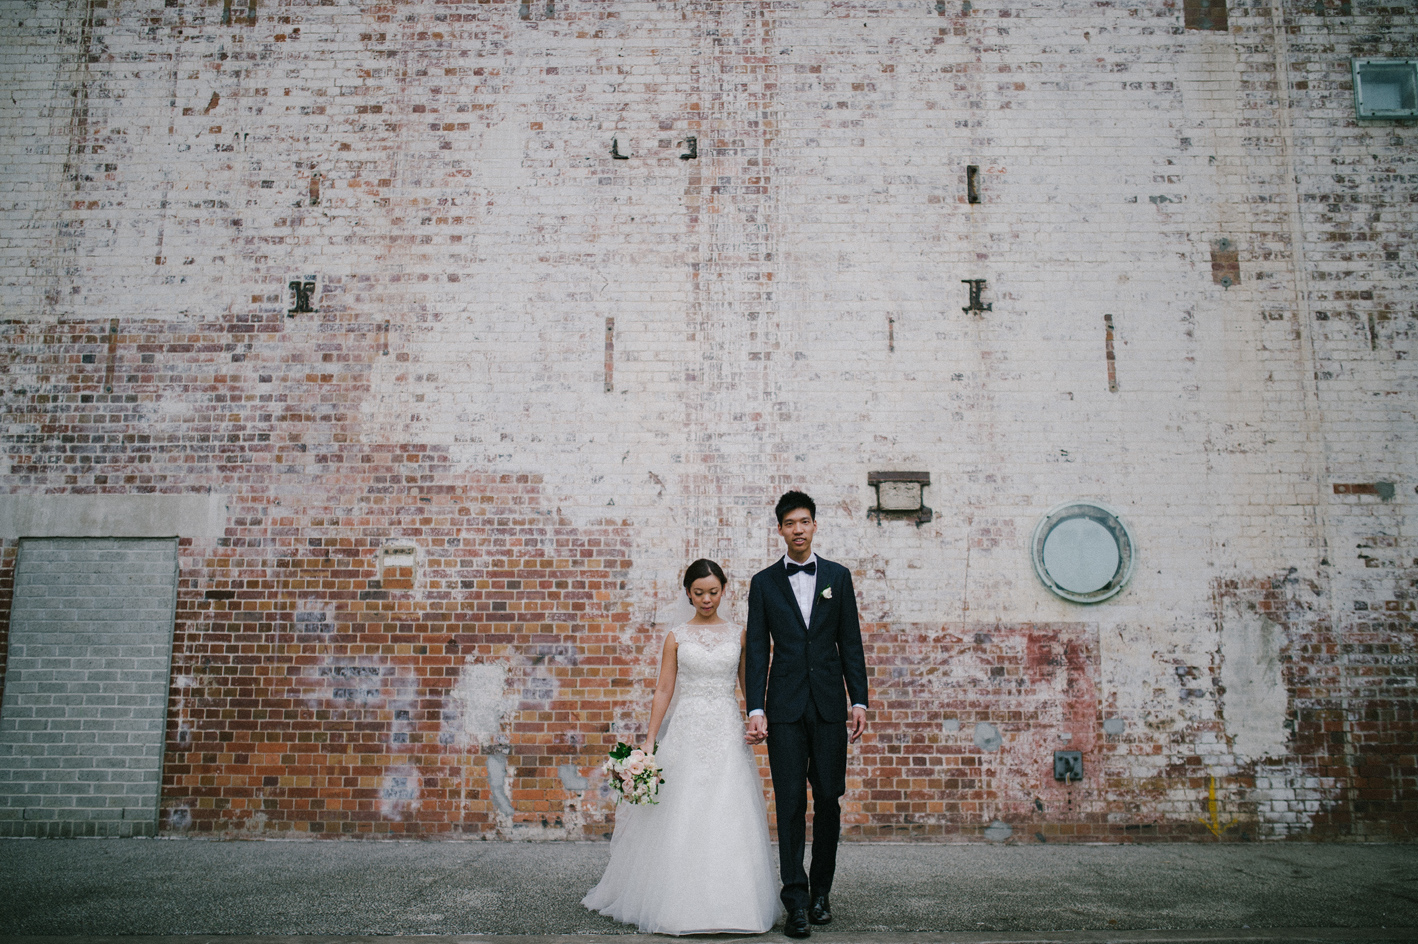 001-laurel-ivan-brisbane-wedding_sophie-baker-photography